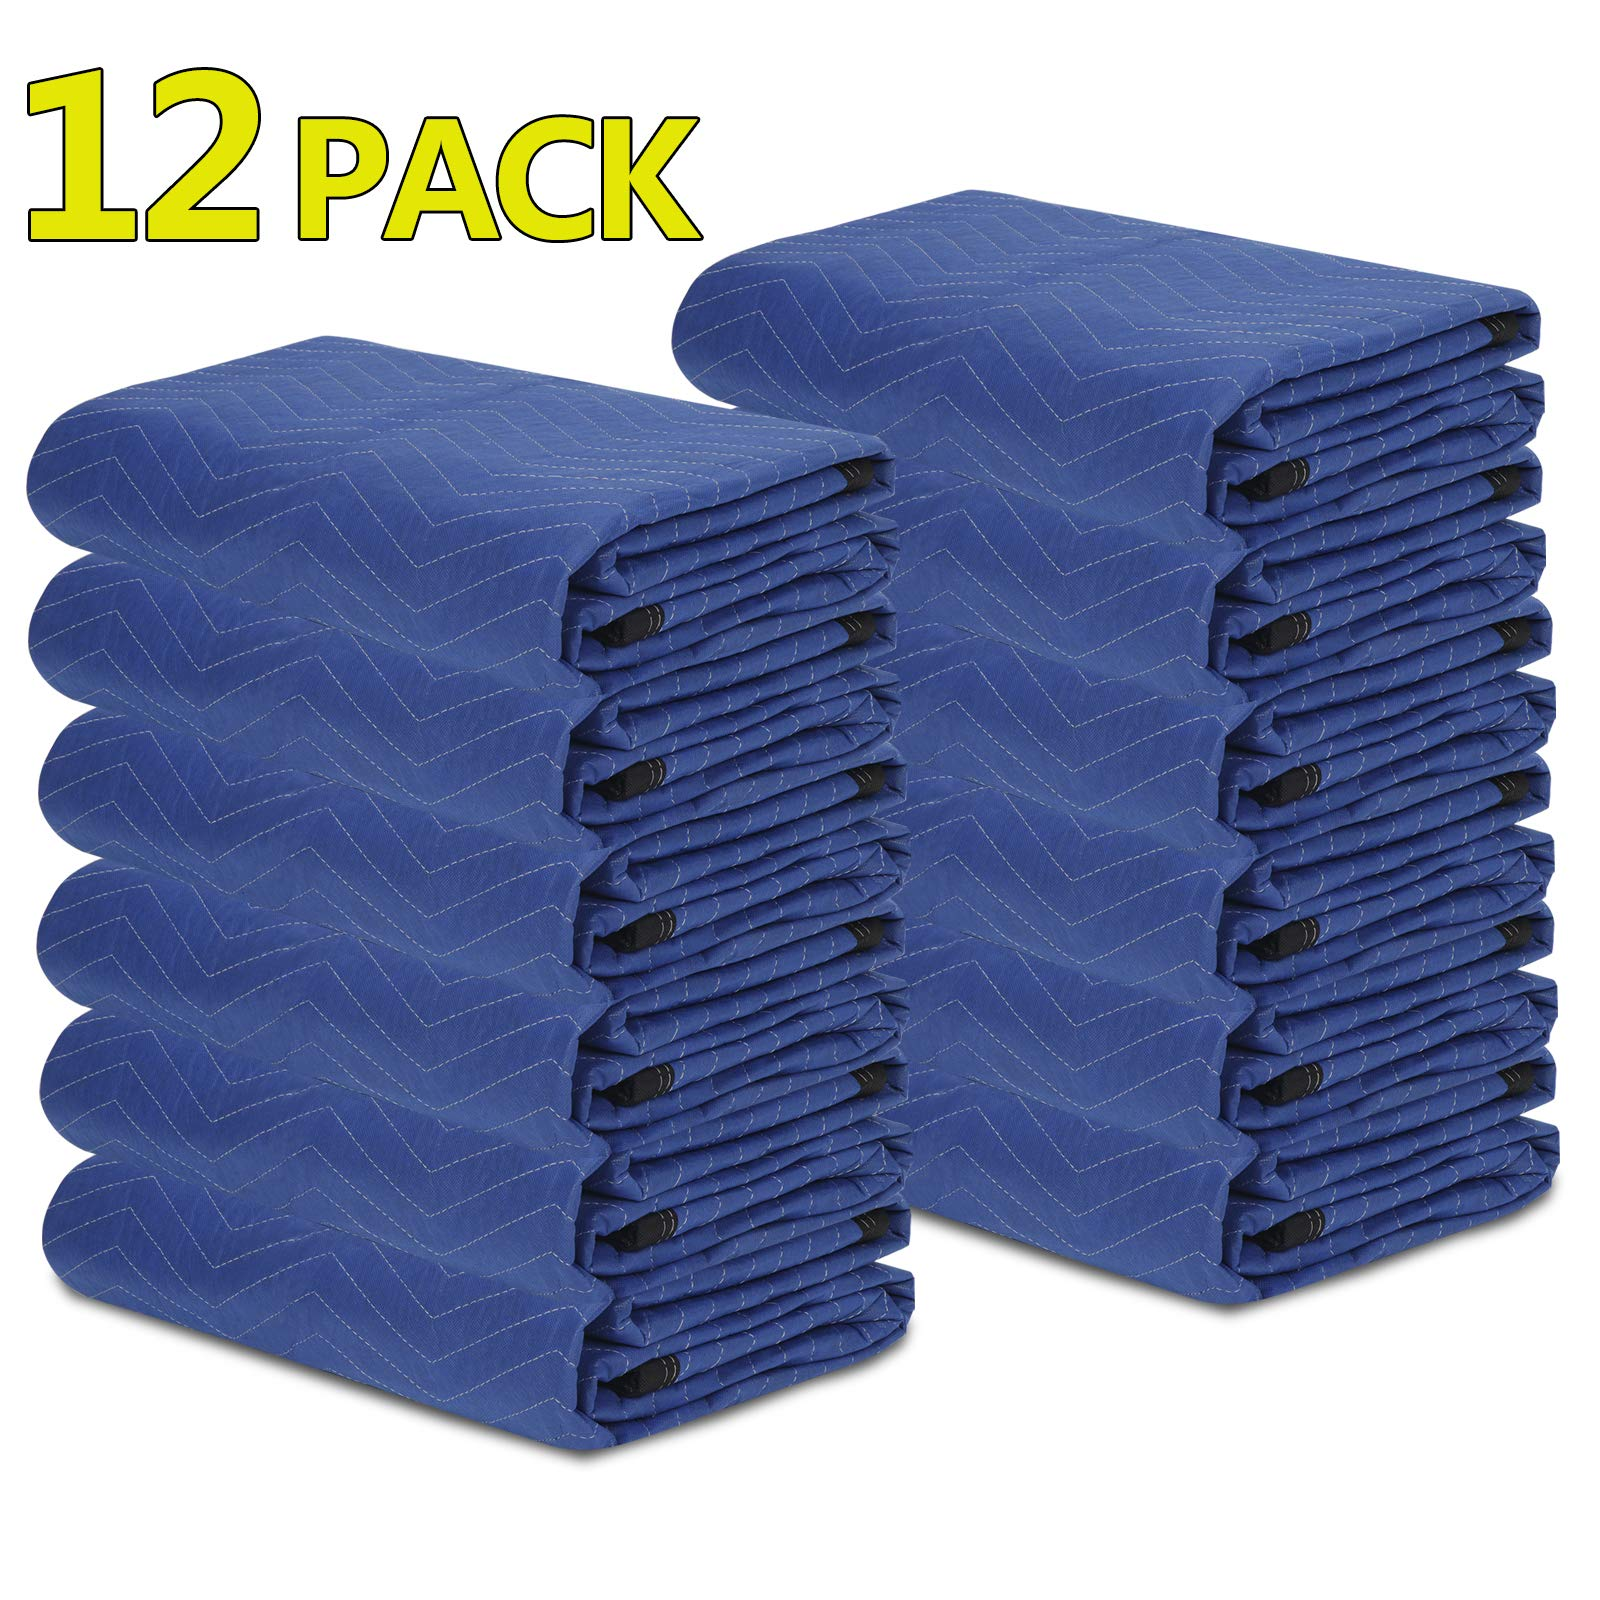 ZENY 12 Moving Blankets Packing Blanket Quilted Shipping Furniture Pads 80''x 72'' Moving Supplies,Furniture Protection and Pack Blankets by ZENY (Image #1)